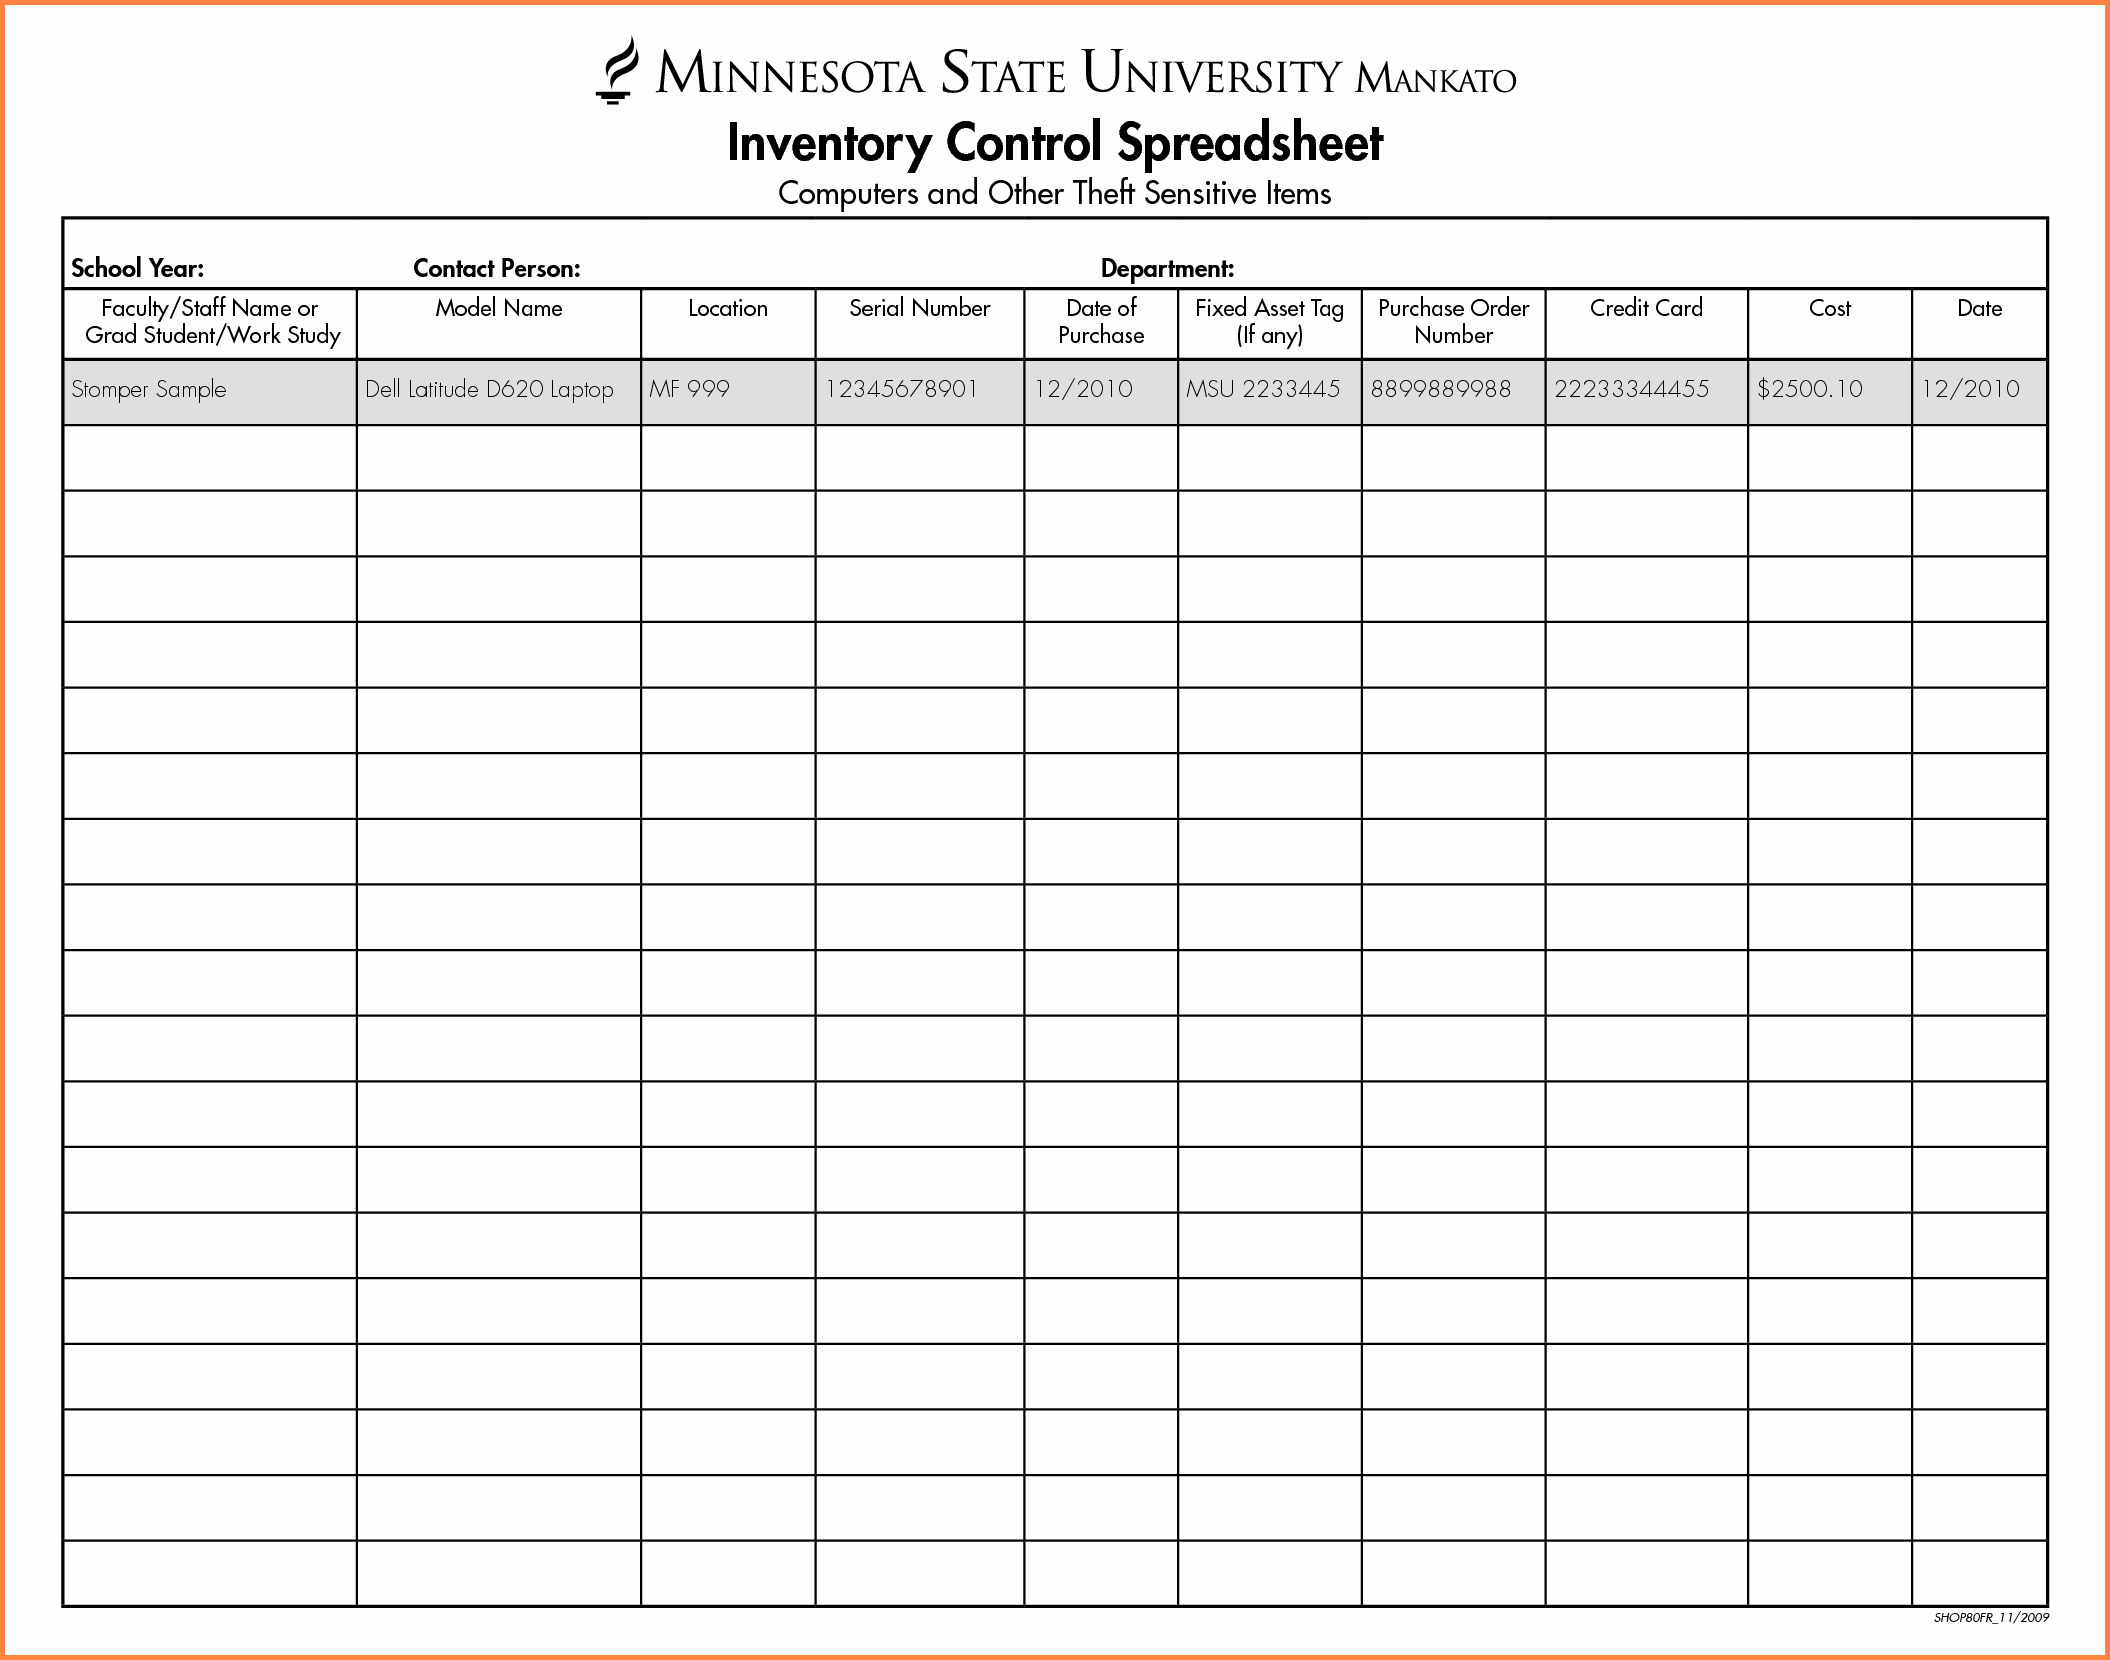 Inventory Control Spreadsheet Template Free Awesome 5 Spreadsheet Inventory Template